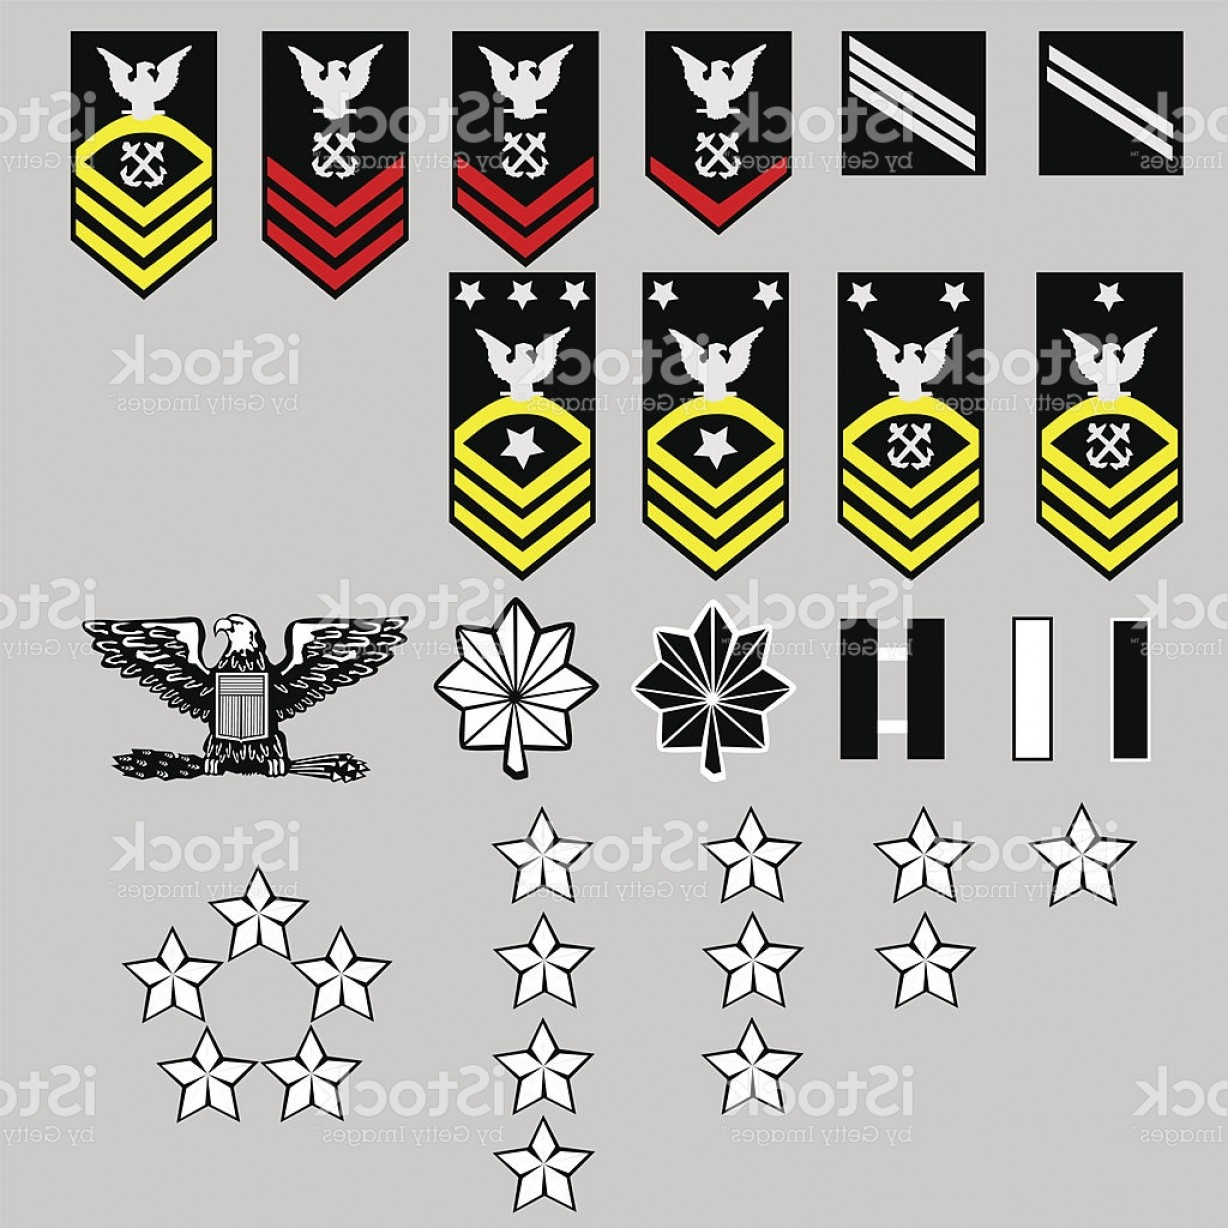 U S. Navy Logo Vector: Us Navy Enlisted And Officer Rang Insignia In Vector Format Gm